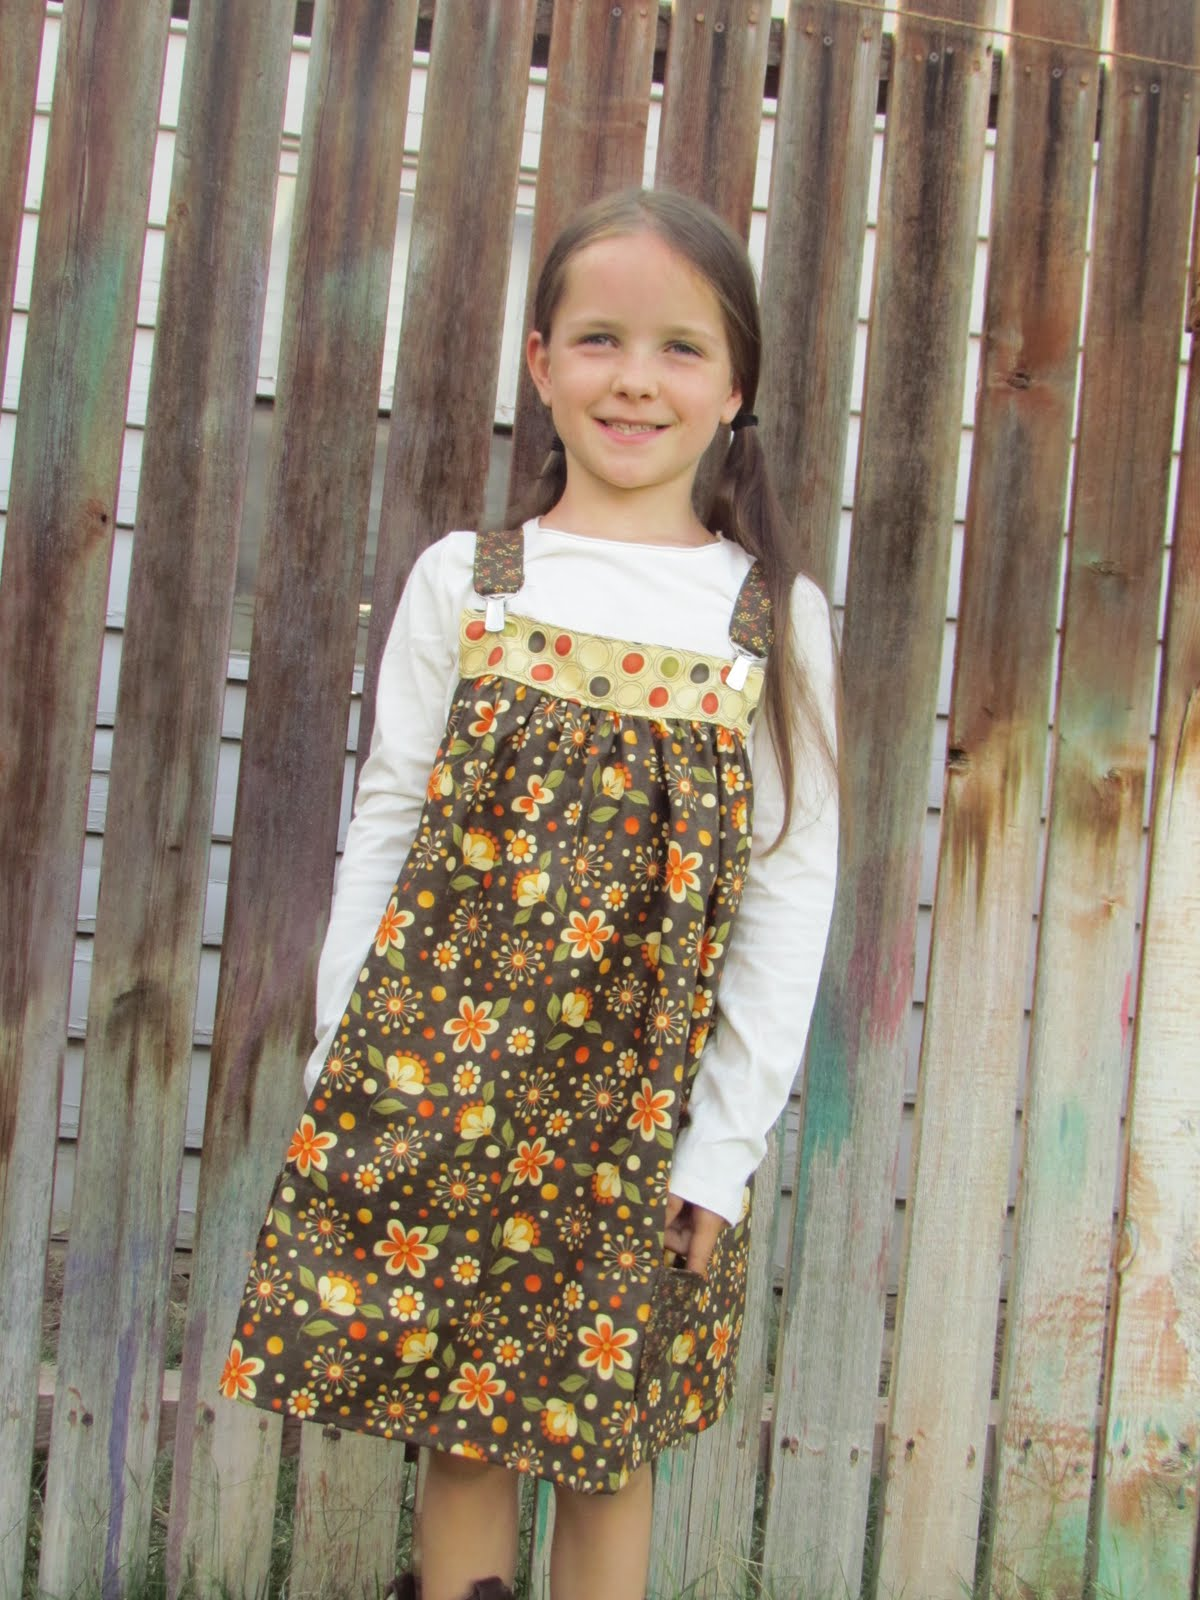 Shop girls clothing cheap sale online, you can buy best cute baby girl clothes, clothes for little girls and toddler girl clothes at wholesale prices on tennesseemyblogw0.cf FREE Shipping available worldwide.